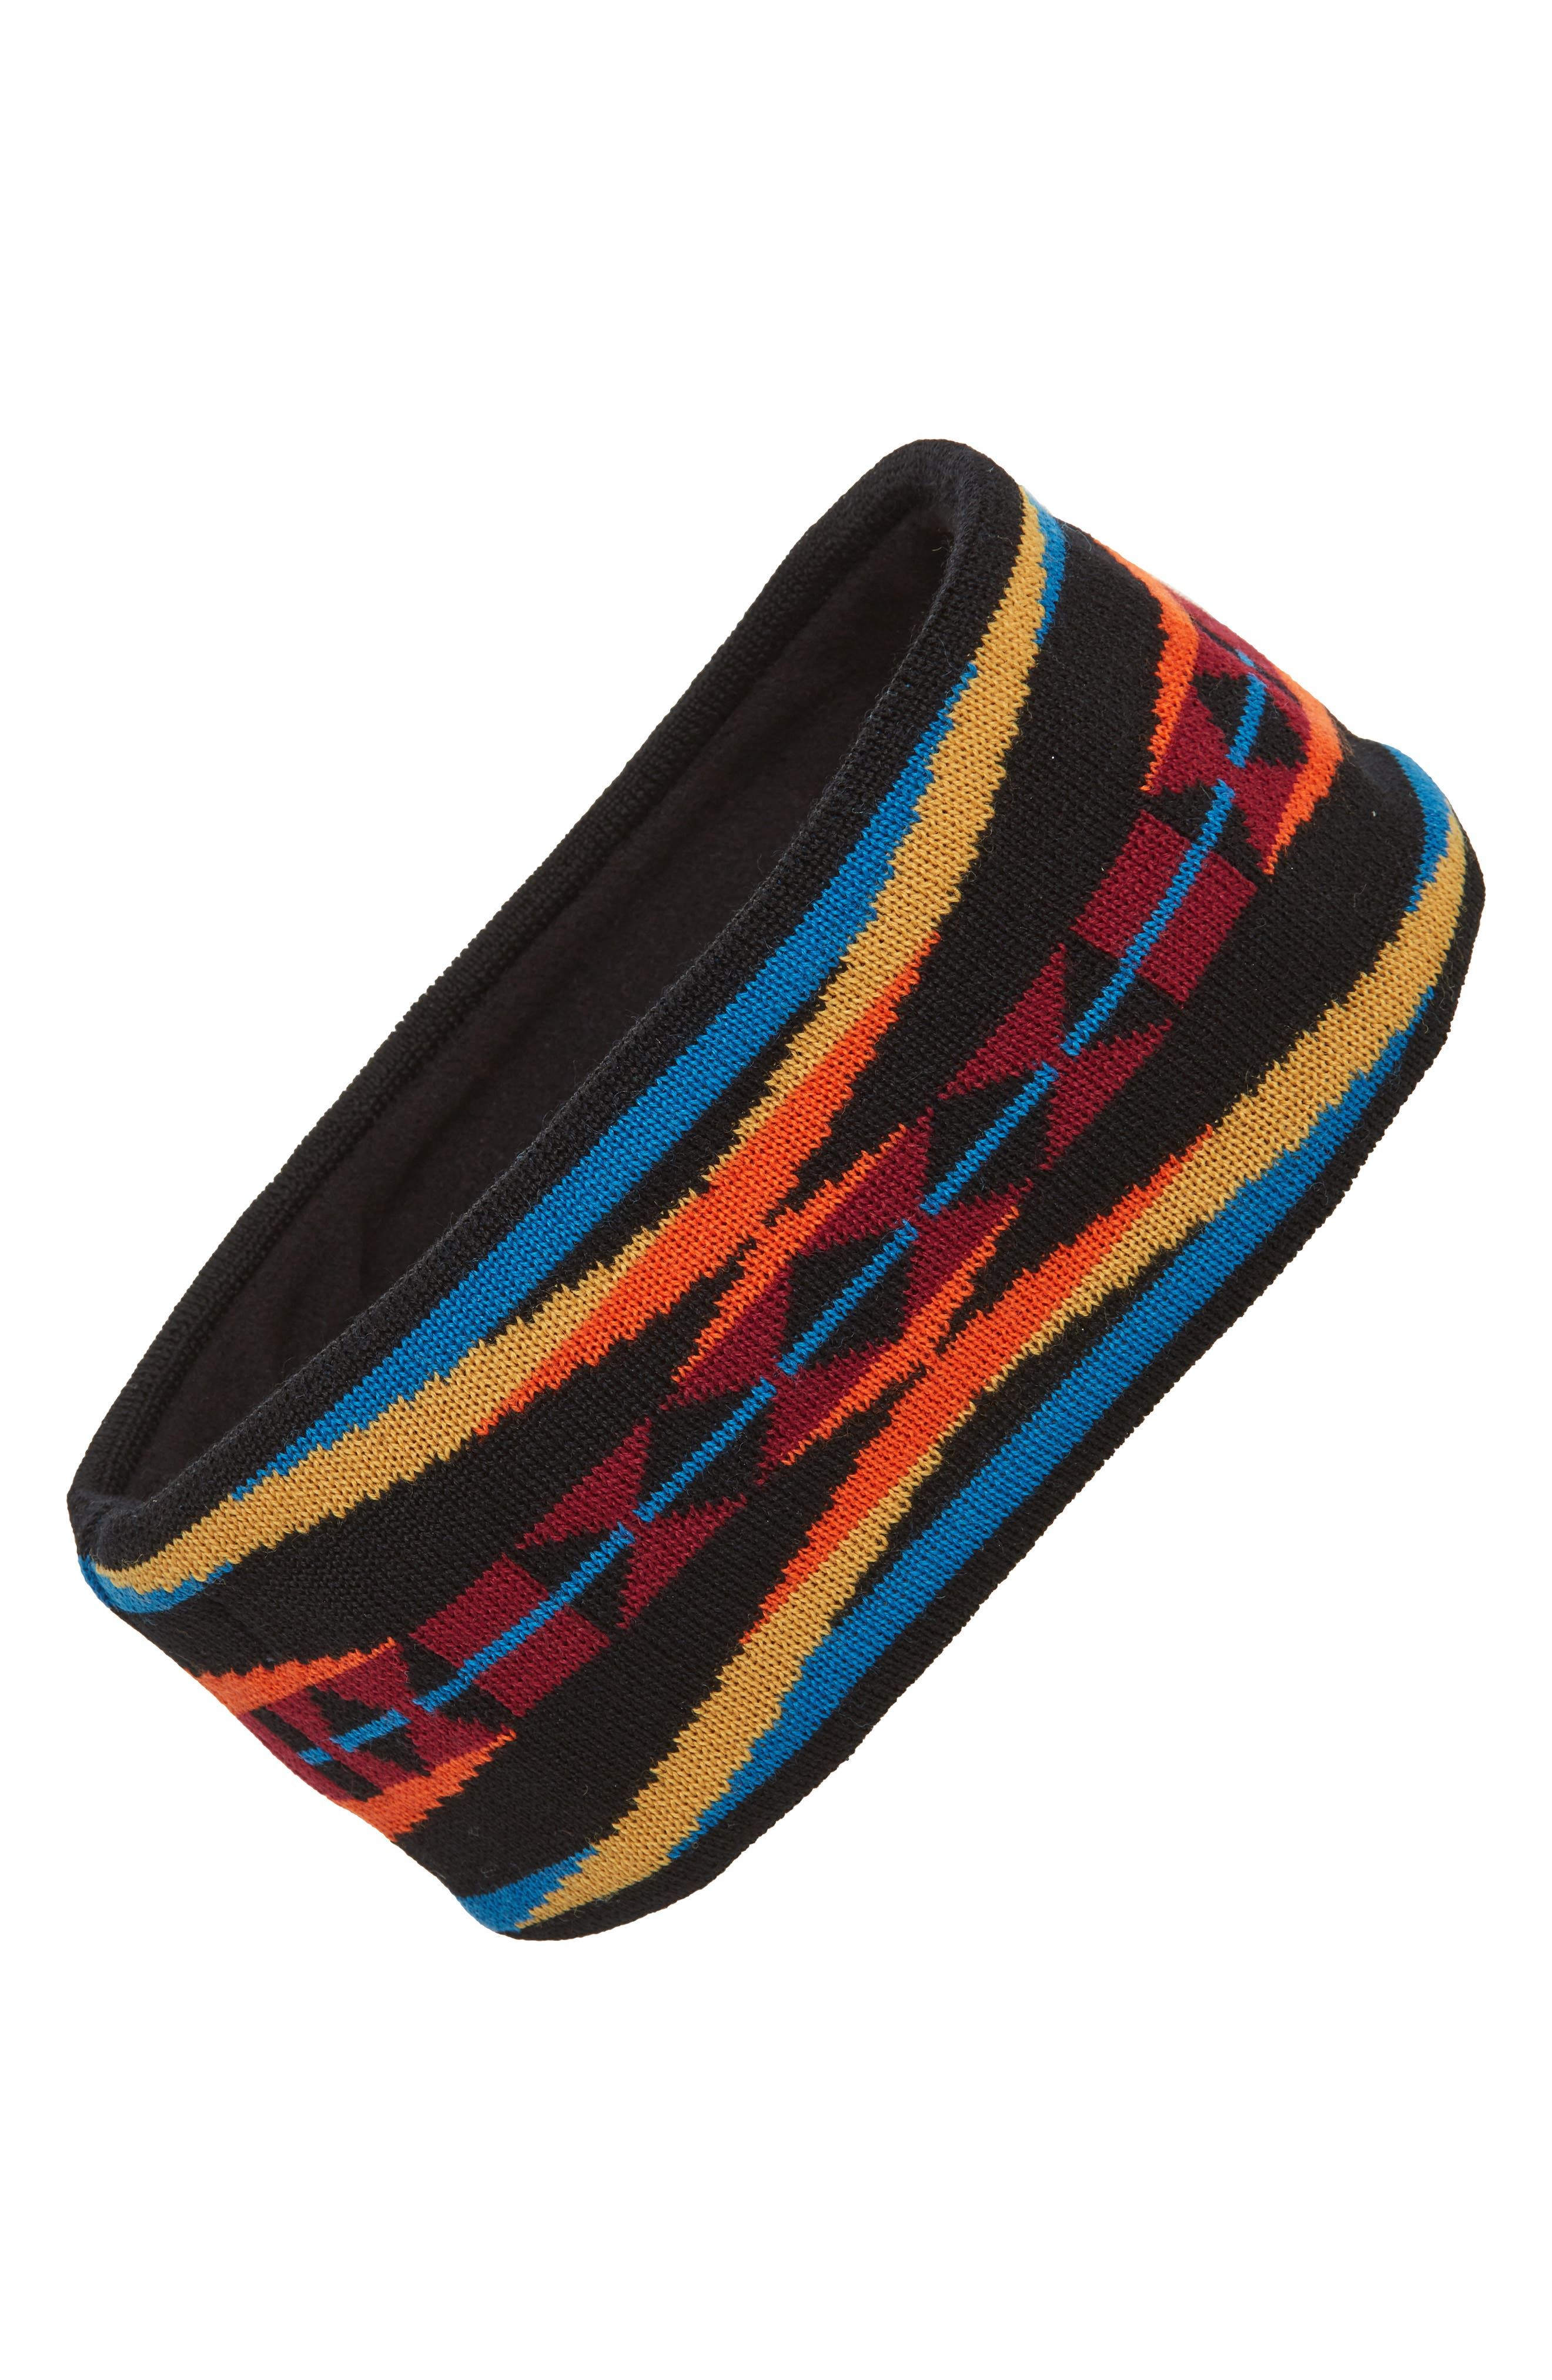 Alternate Image 1 Selected - Pendleton Fleece Lined Headband